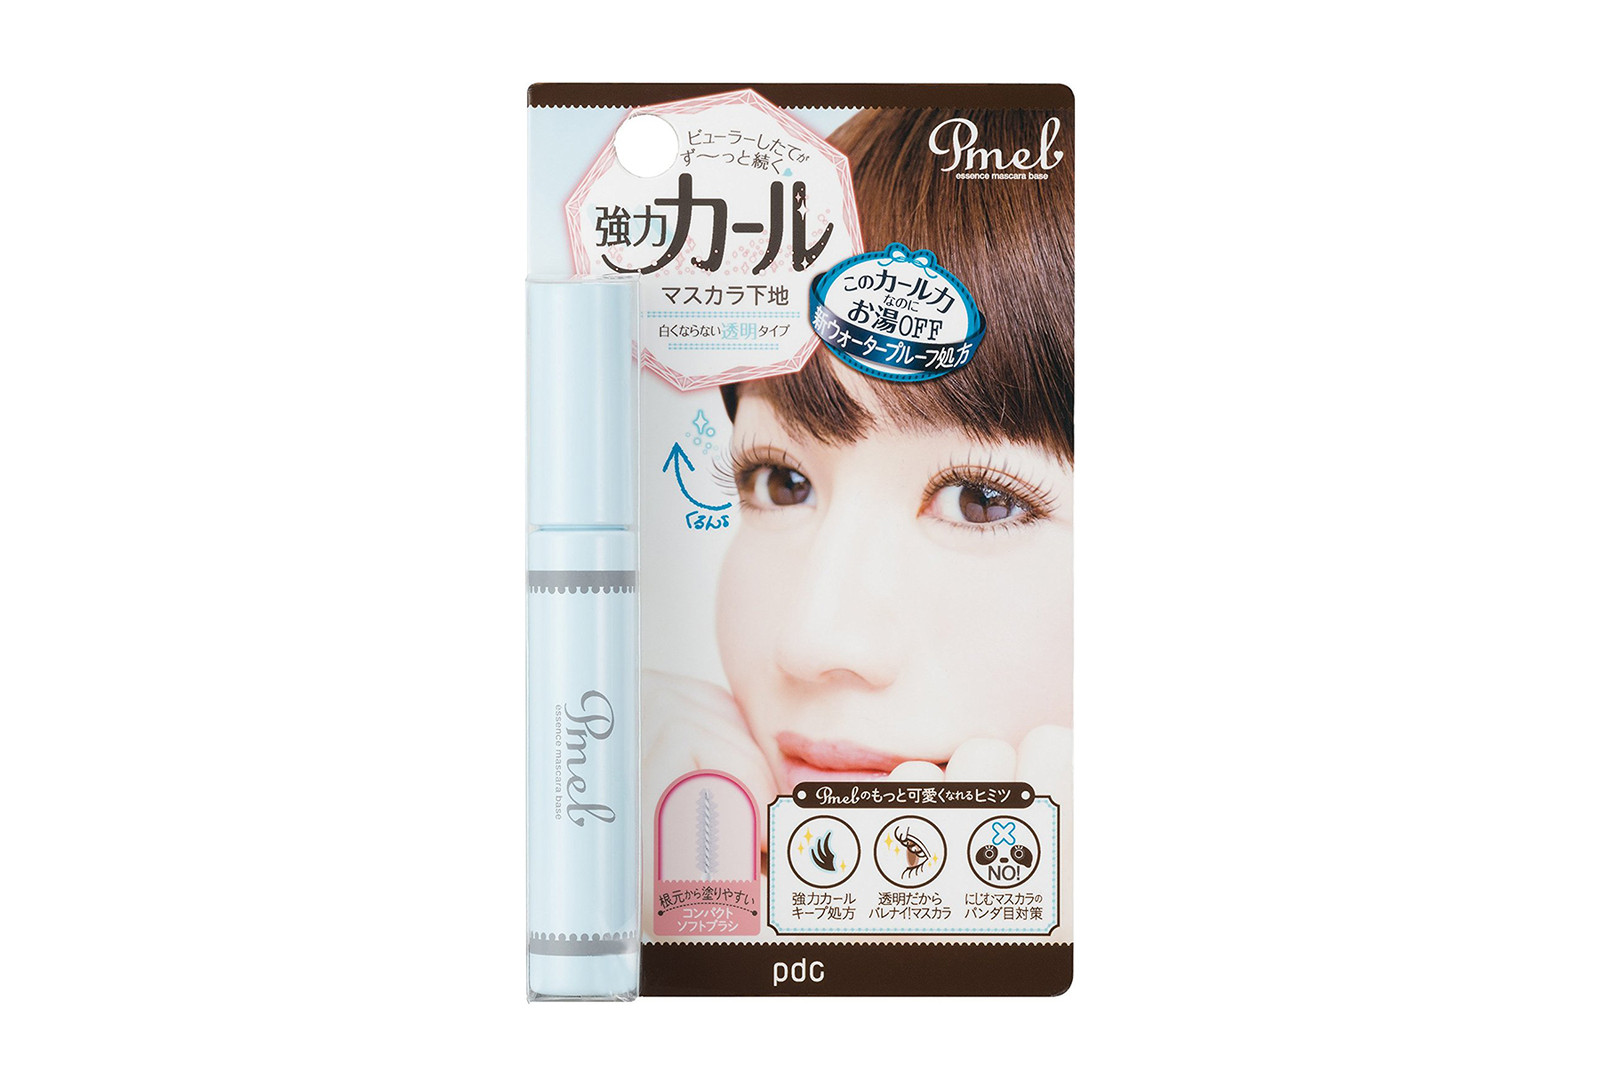 PDC Pmel Essence Mascara Base Lash Primer Makeup Glossier Slick Caution Hourglass Shu Uemura Curler